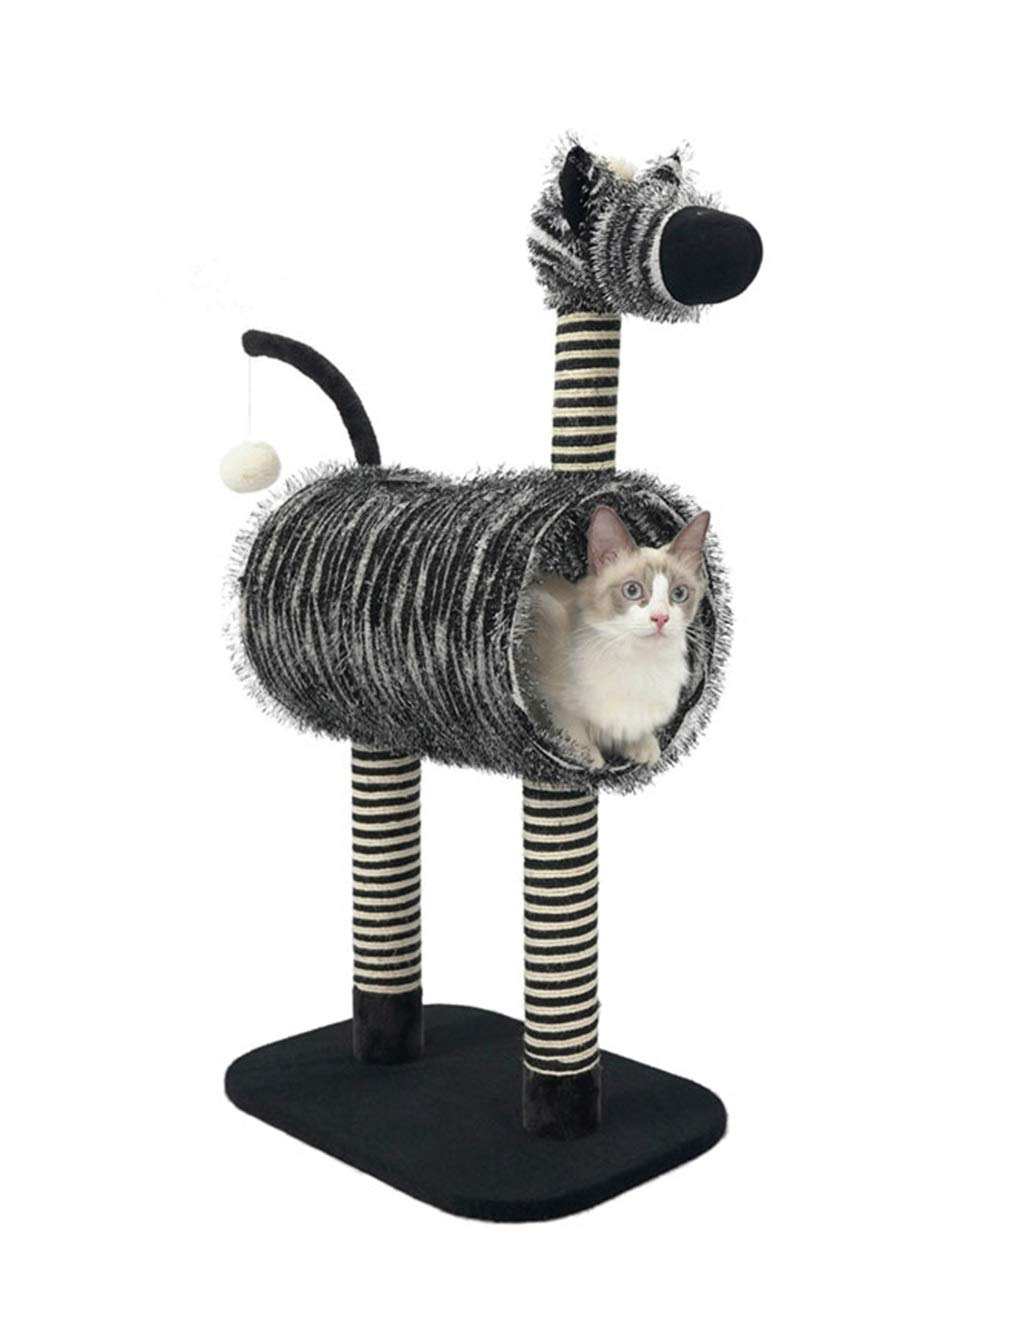 Cat Tree   Creative Zebra Style Cat Climbing Tower Condo with Pompom, Sisal-Covered Scratch Pillar, Activity Centre for Kittens, Cats and Pets